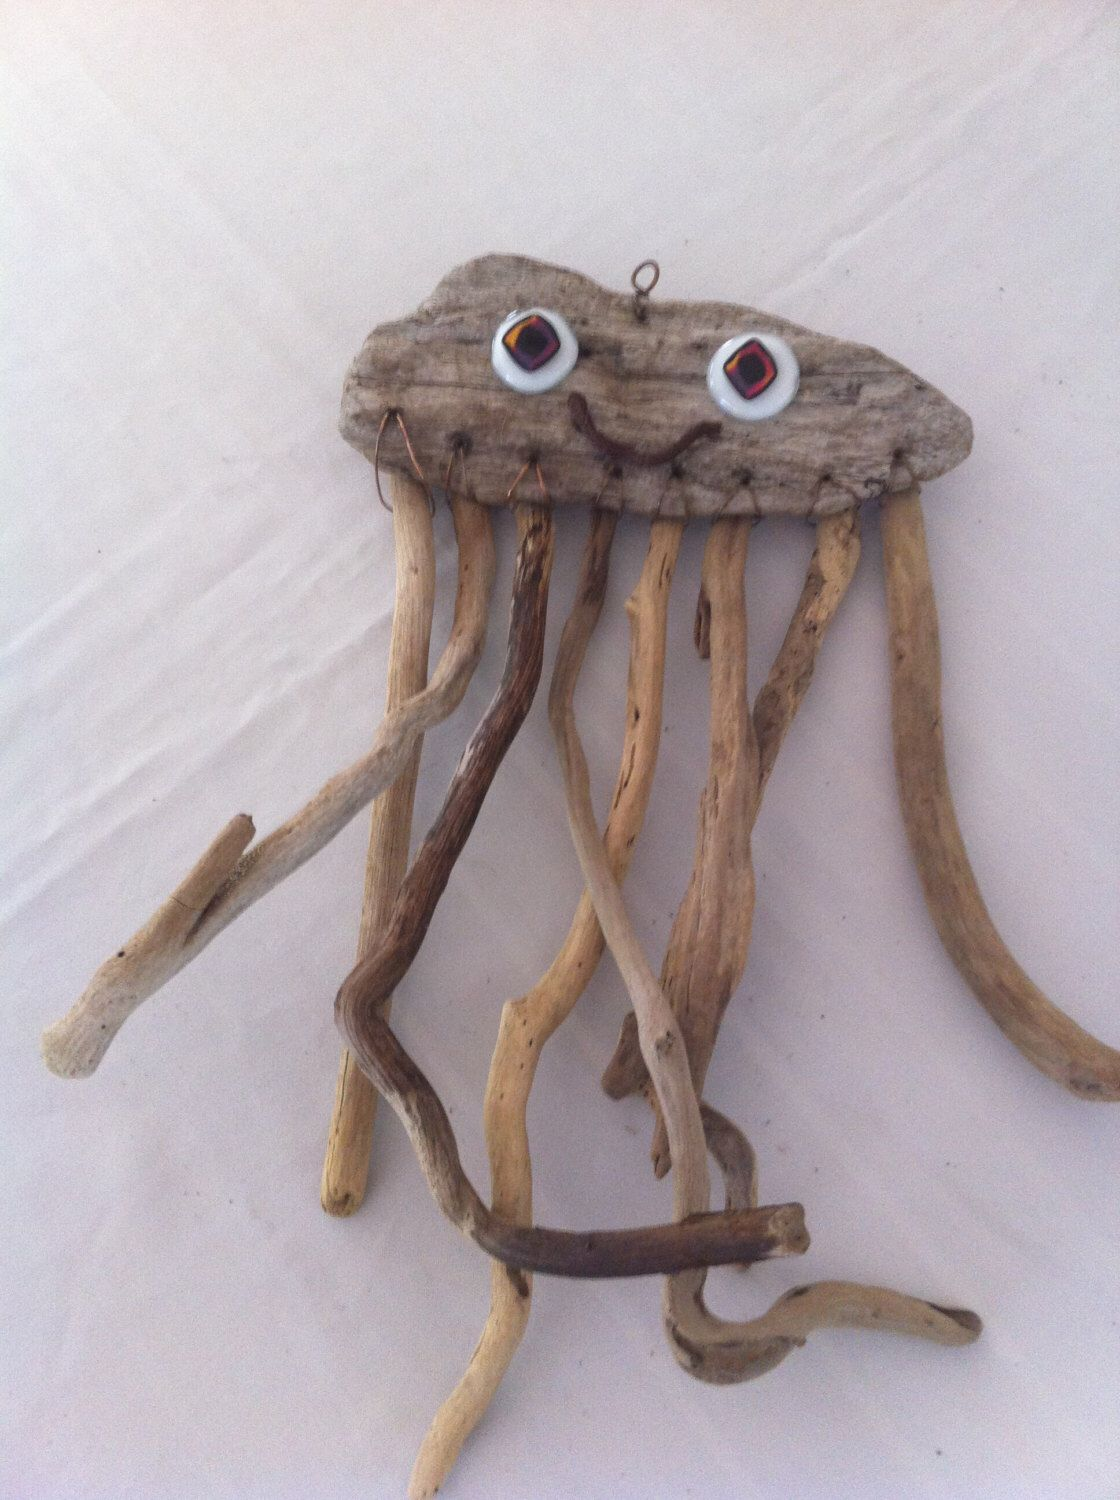 Hanging Driftwood Jellyfish Sculpture Wall Rustic White Fused Glass Eyes By